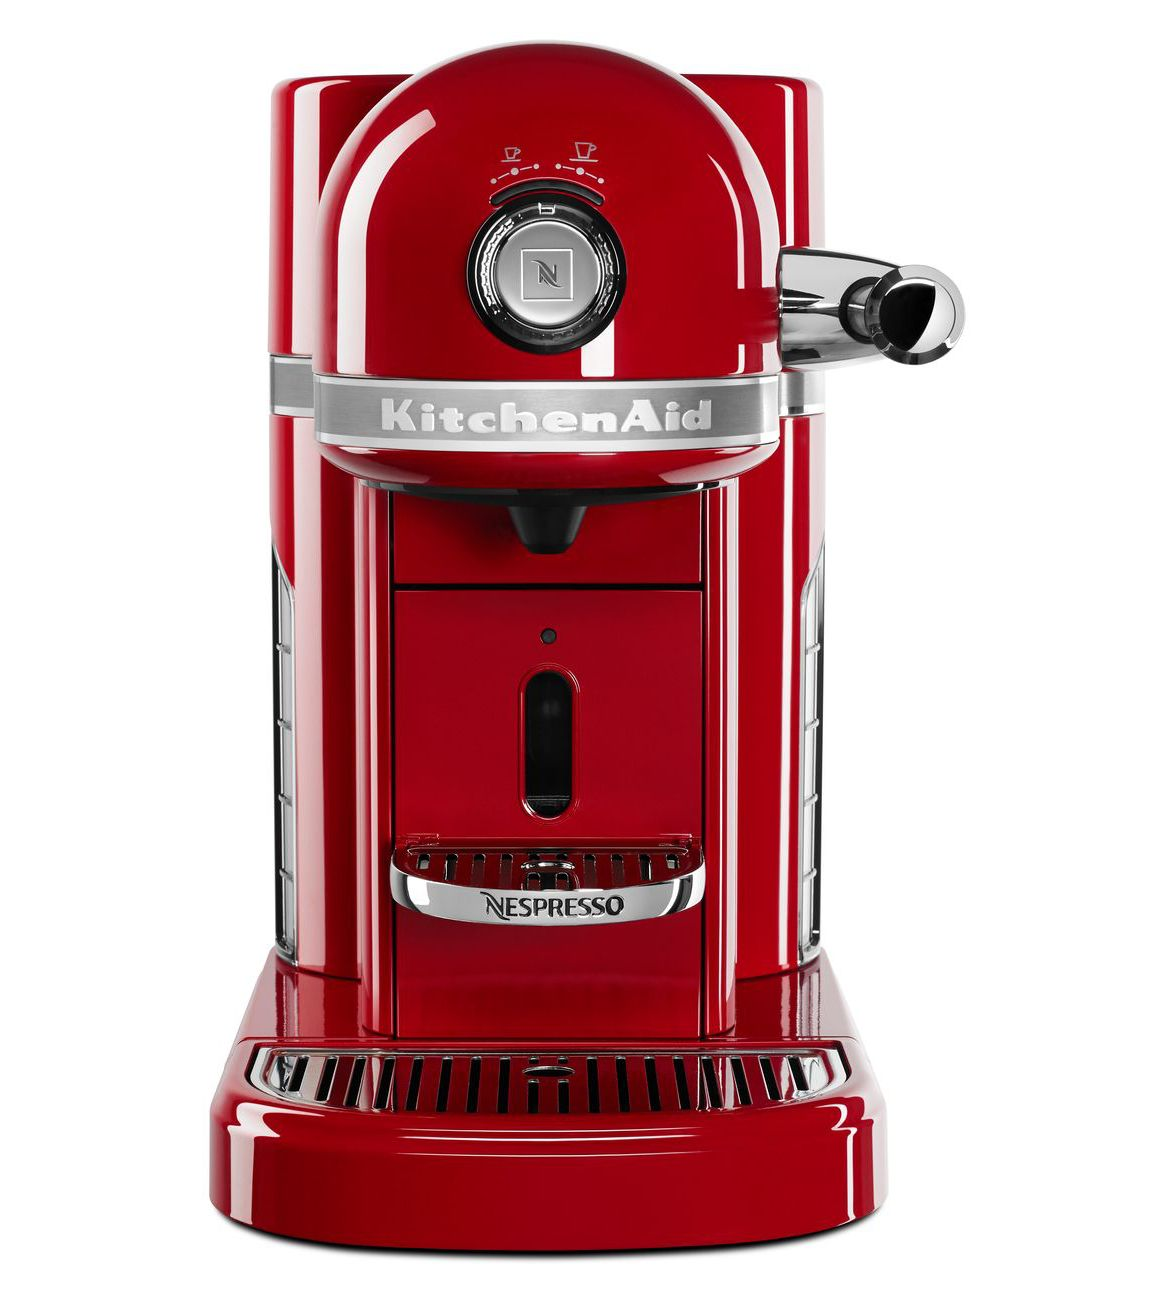 Kitchenaid KES0503ER Nespresso, Empire Red | eBay on kitchenaid waffle maker red, kitchenaid utensils red, kitchenaid chopper in red, kitchenaid candy apple red,